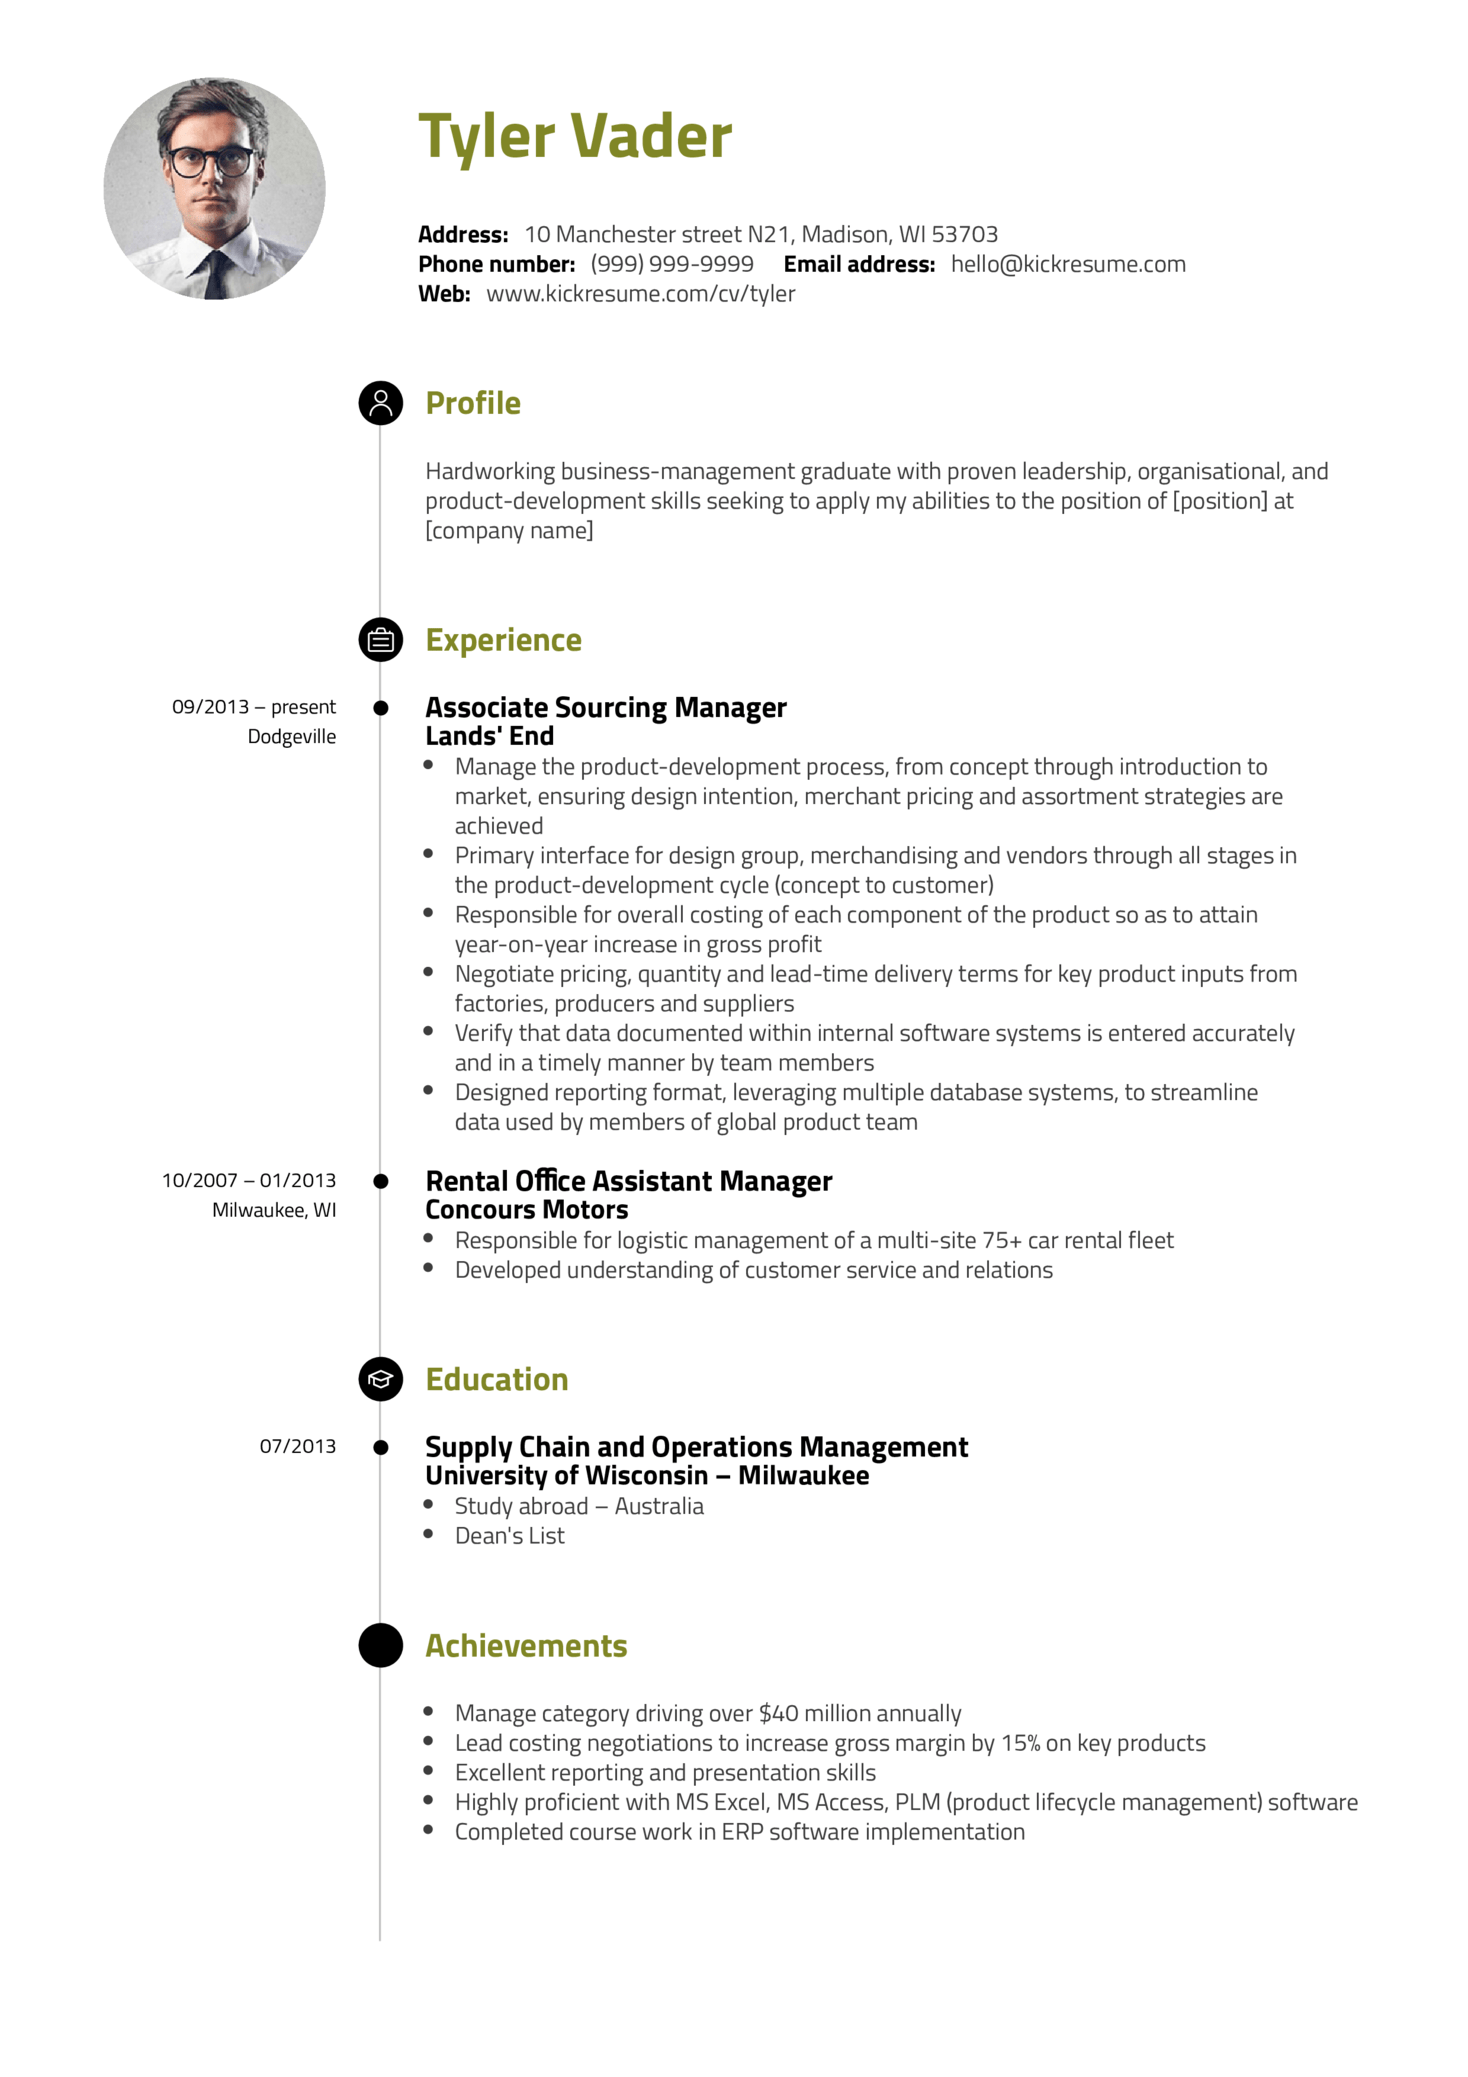 Businessmanagement graduate cv example Resume samples Career